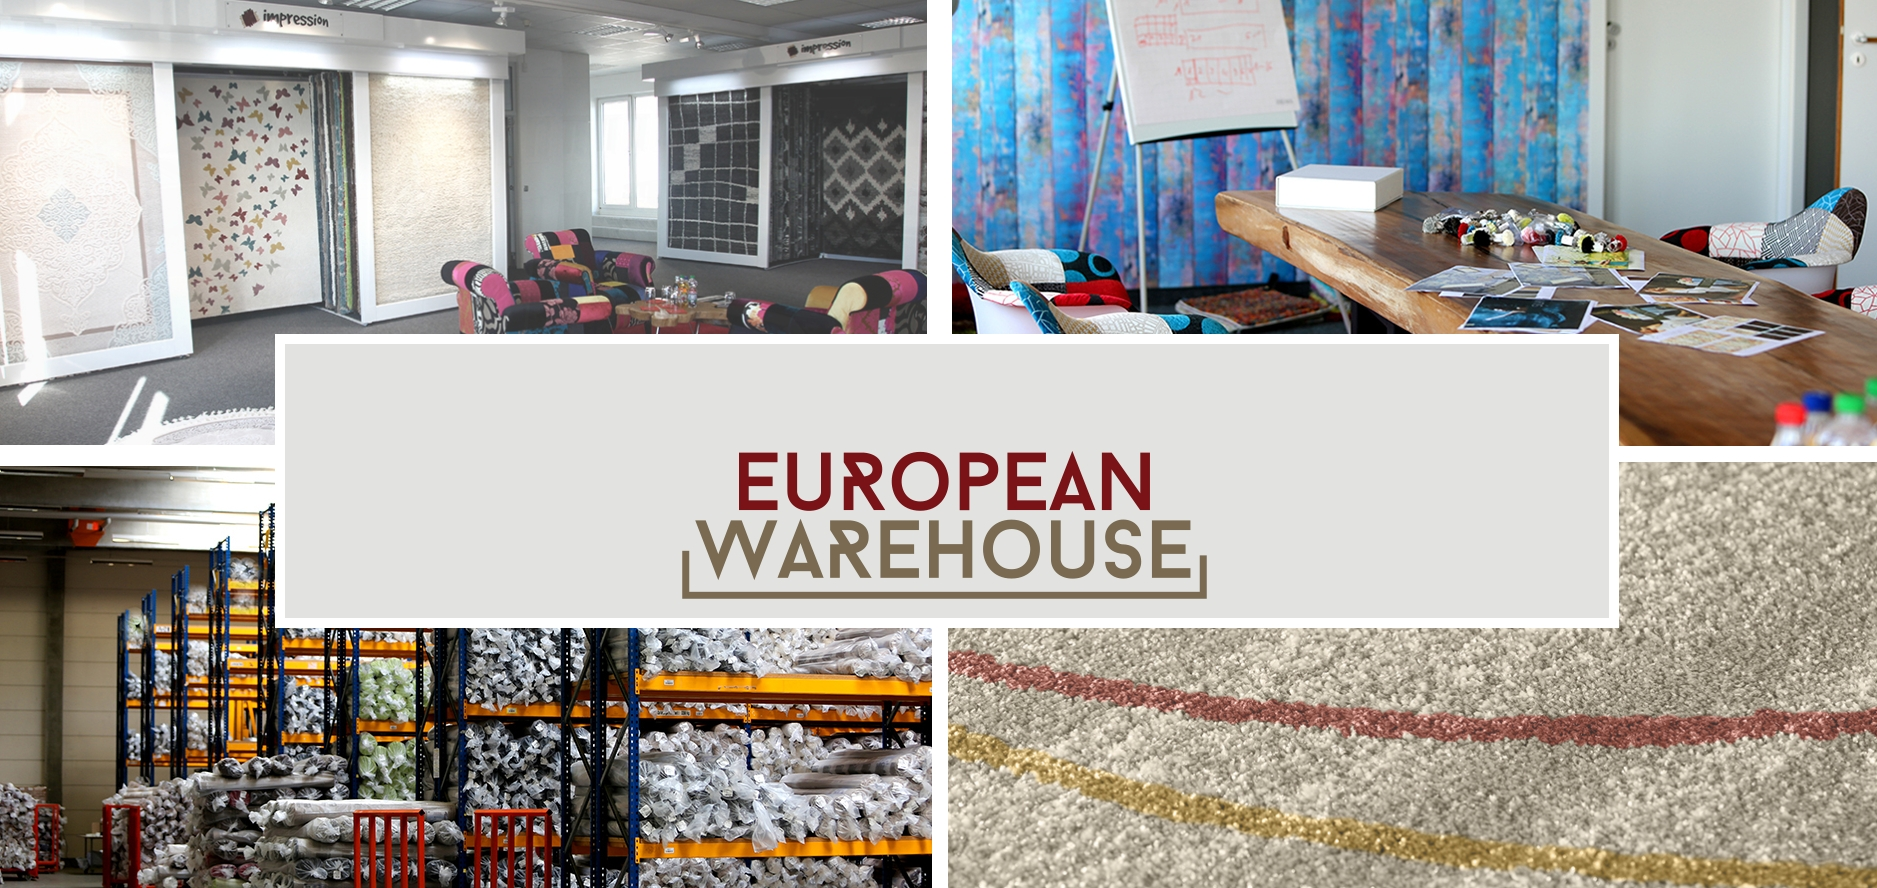 www.european-warehouse.com